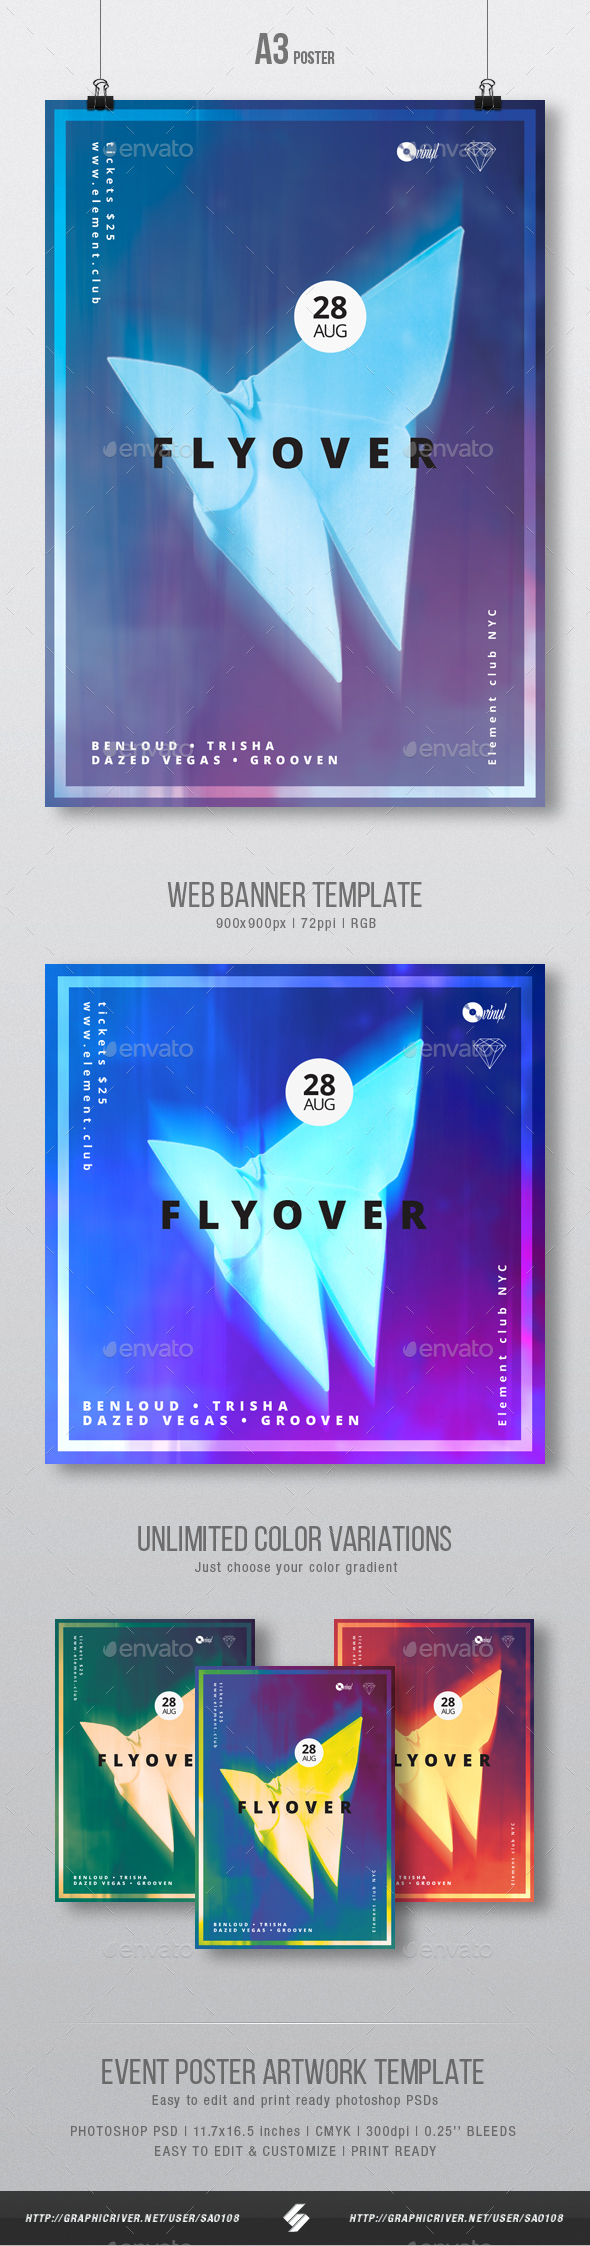 Fly Over - Neon Party Flyer / Poster Artwork Template A3 - Clubs & Parties Events